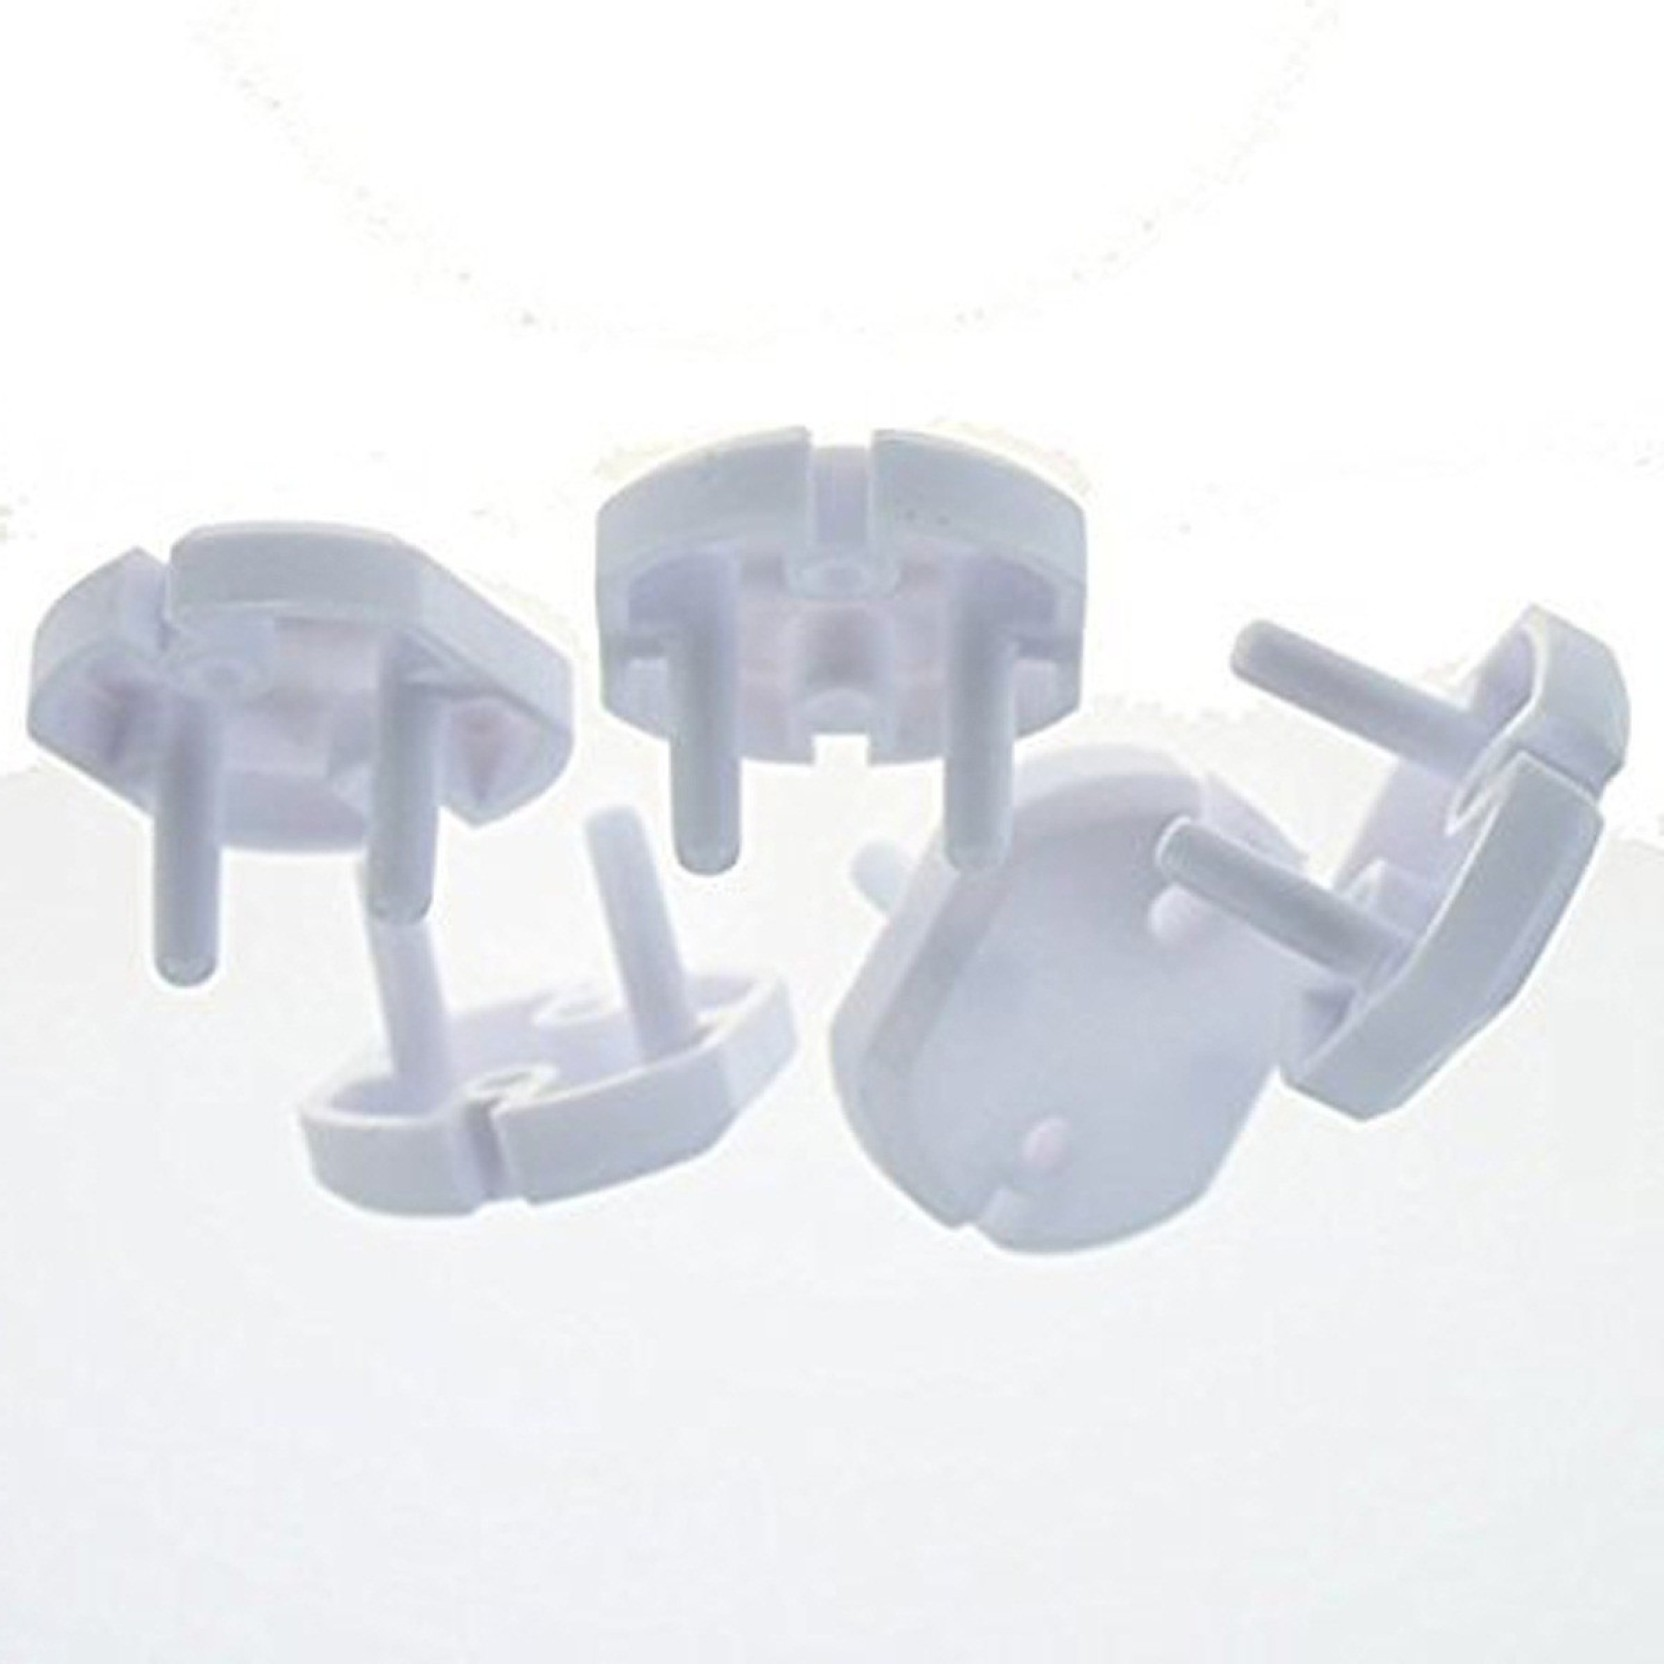 12 White 3 Pin Baby//Child Safety Plug Socket Guard Covers Clearance Sale